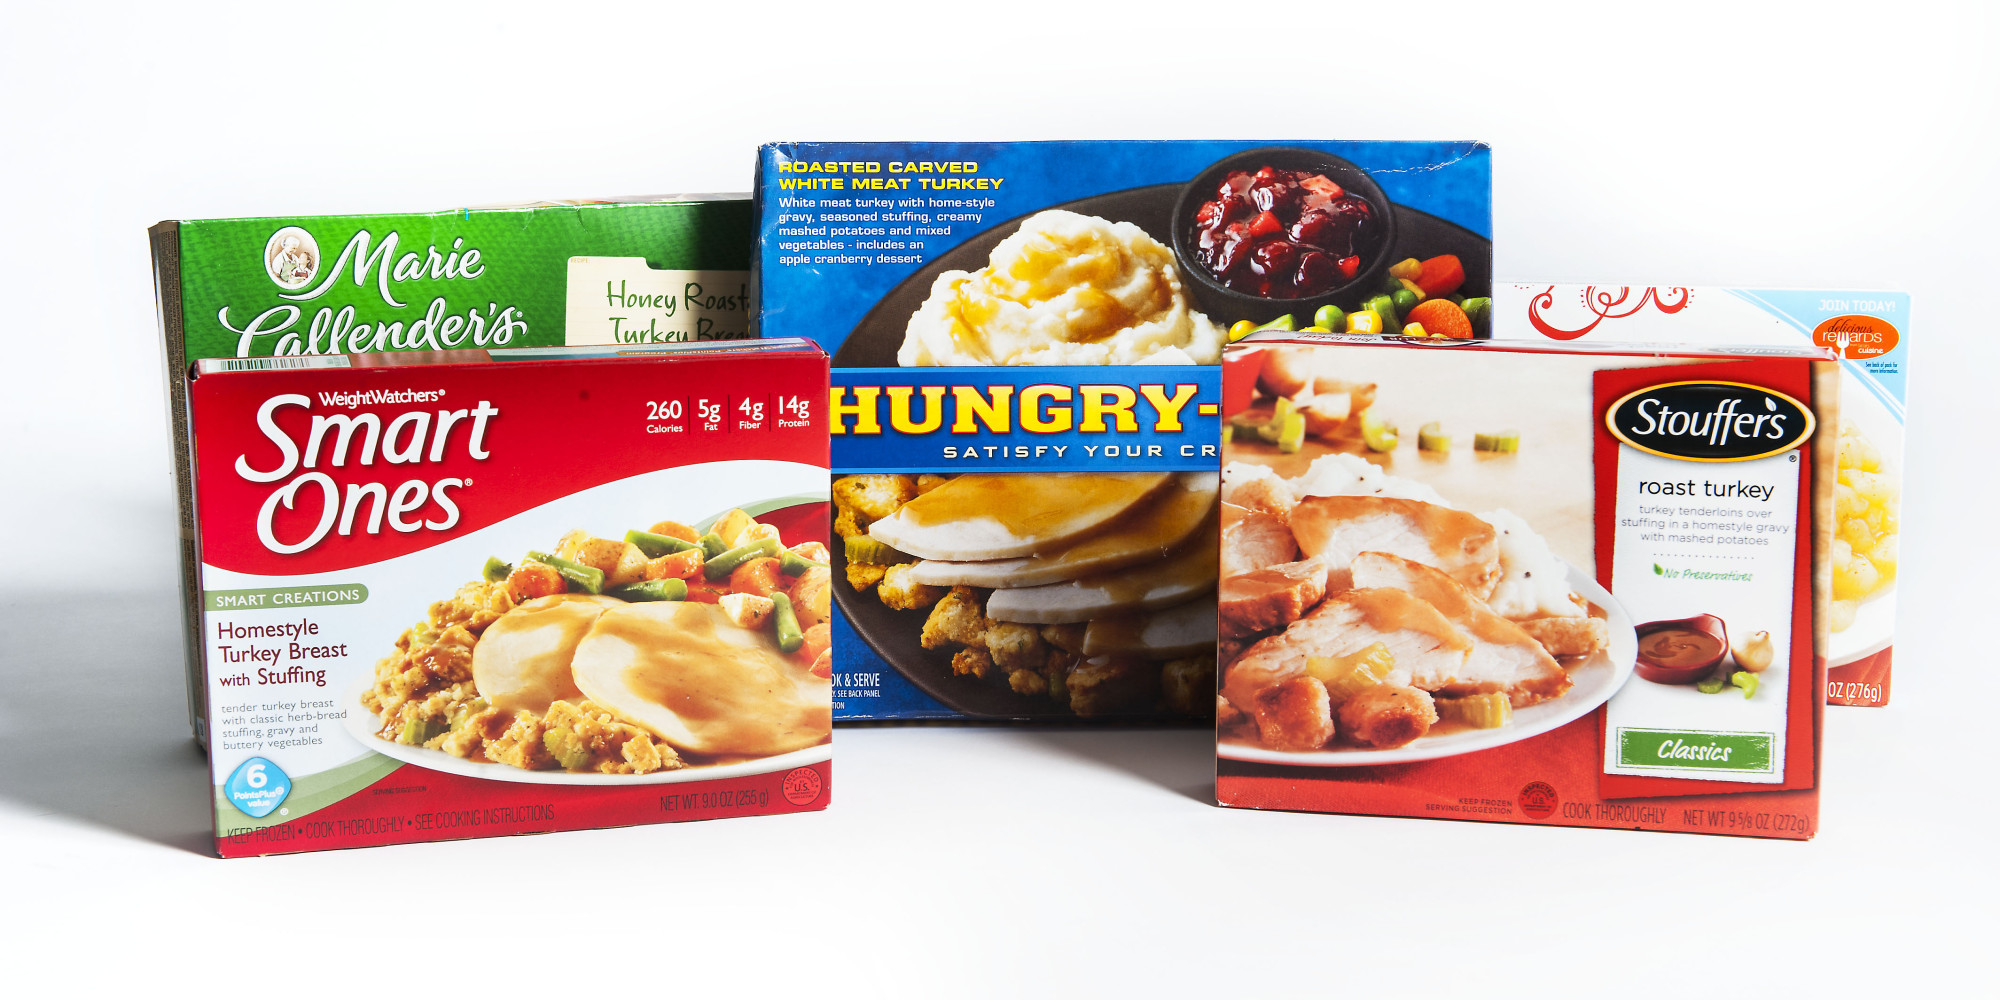 Lean Cuisine Makes 'Massive Pivot' Away From Diet Marketing